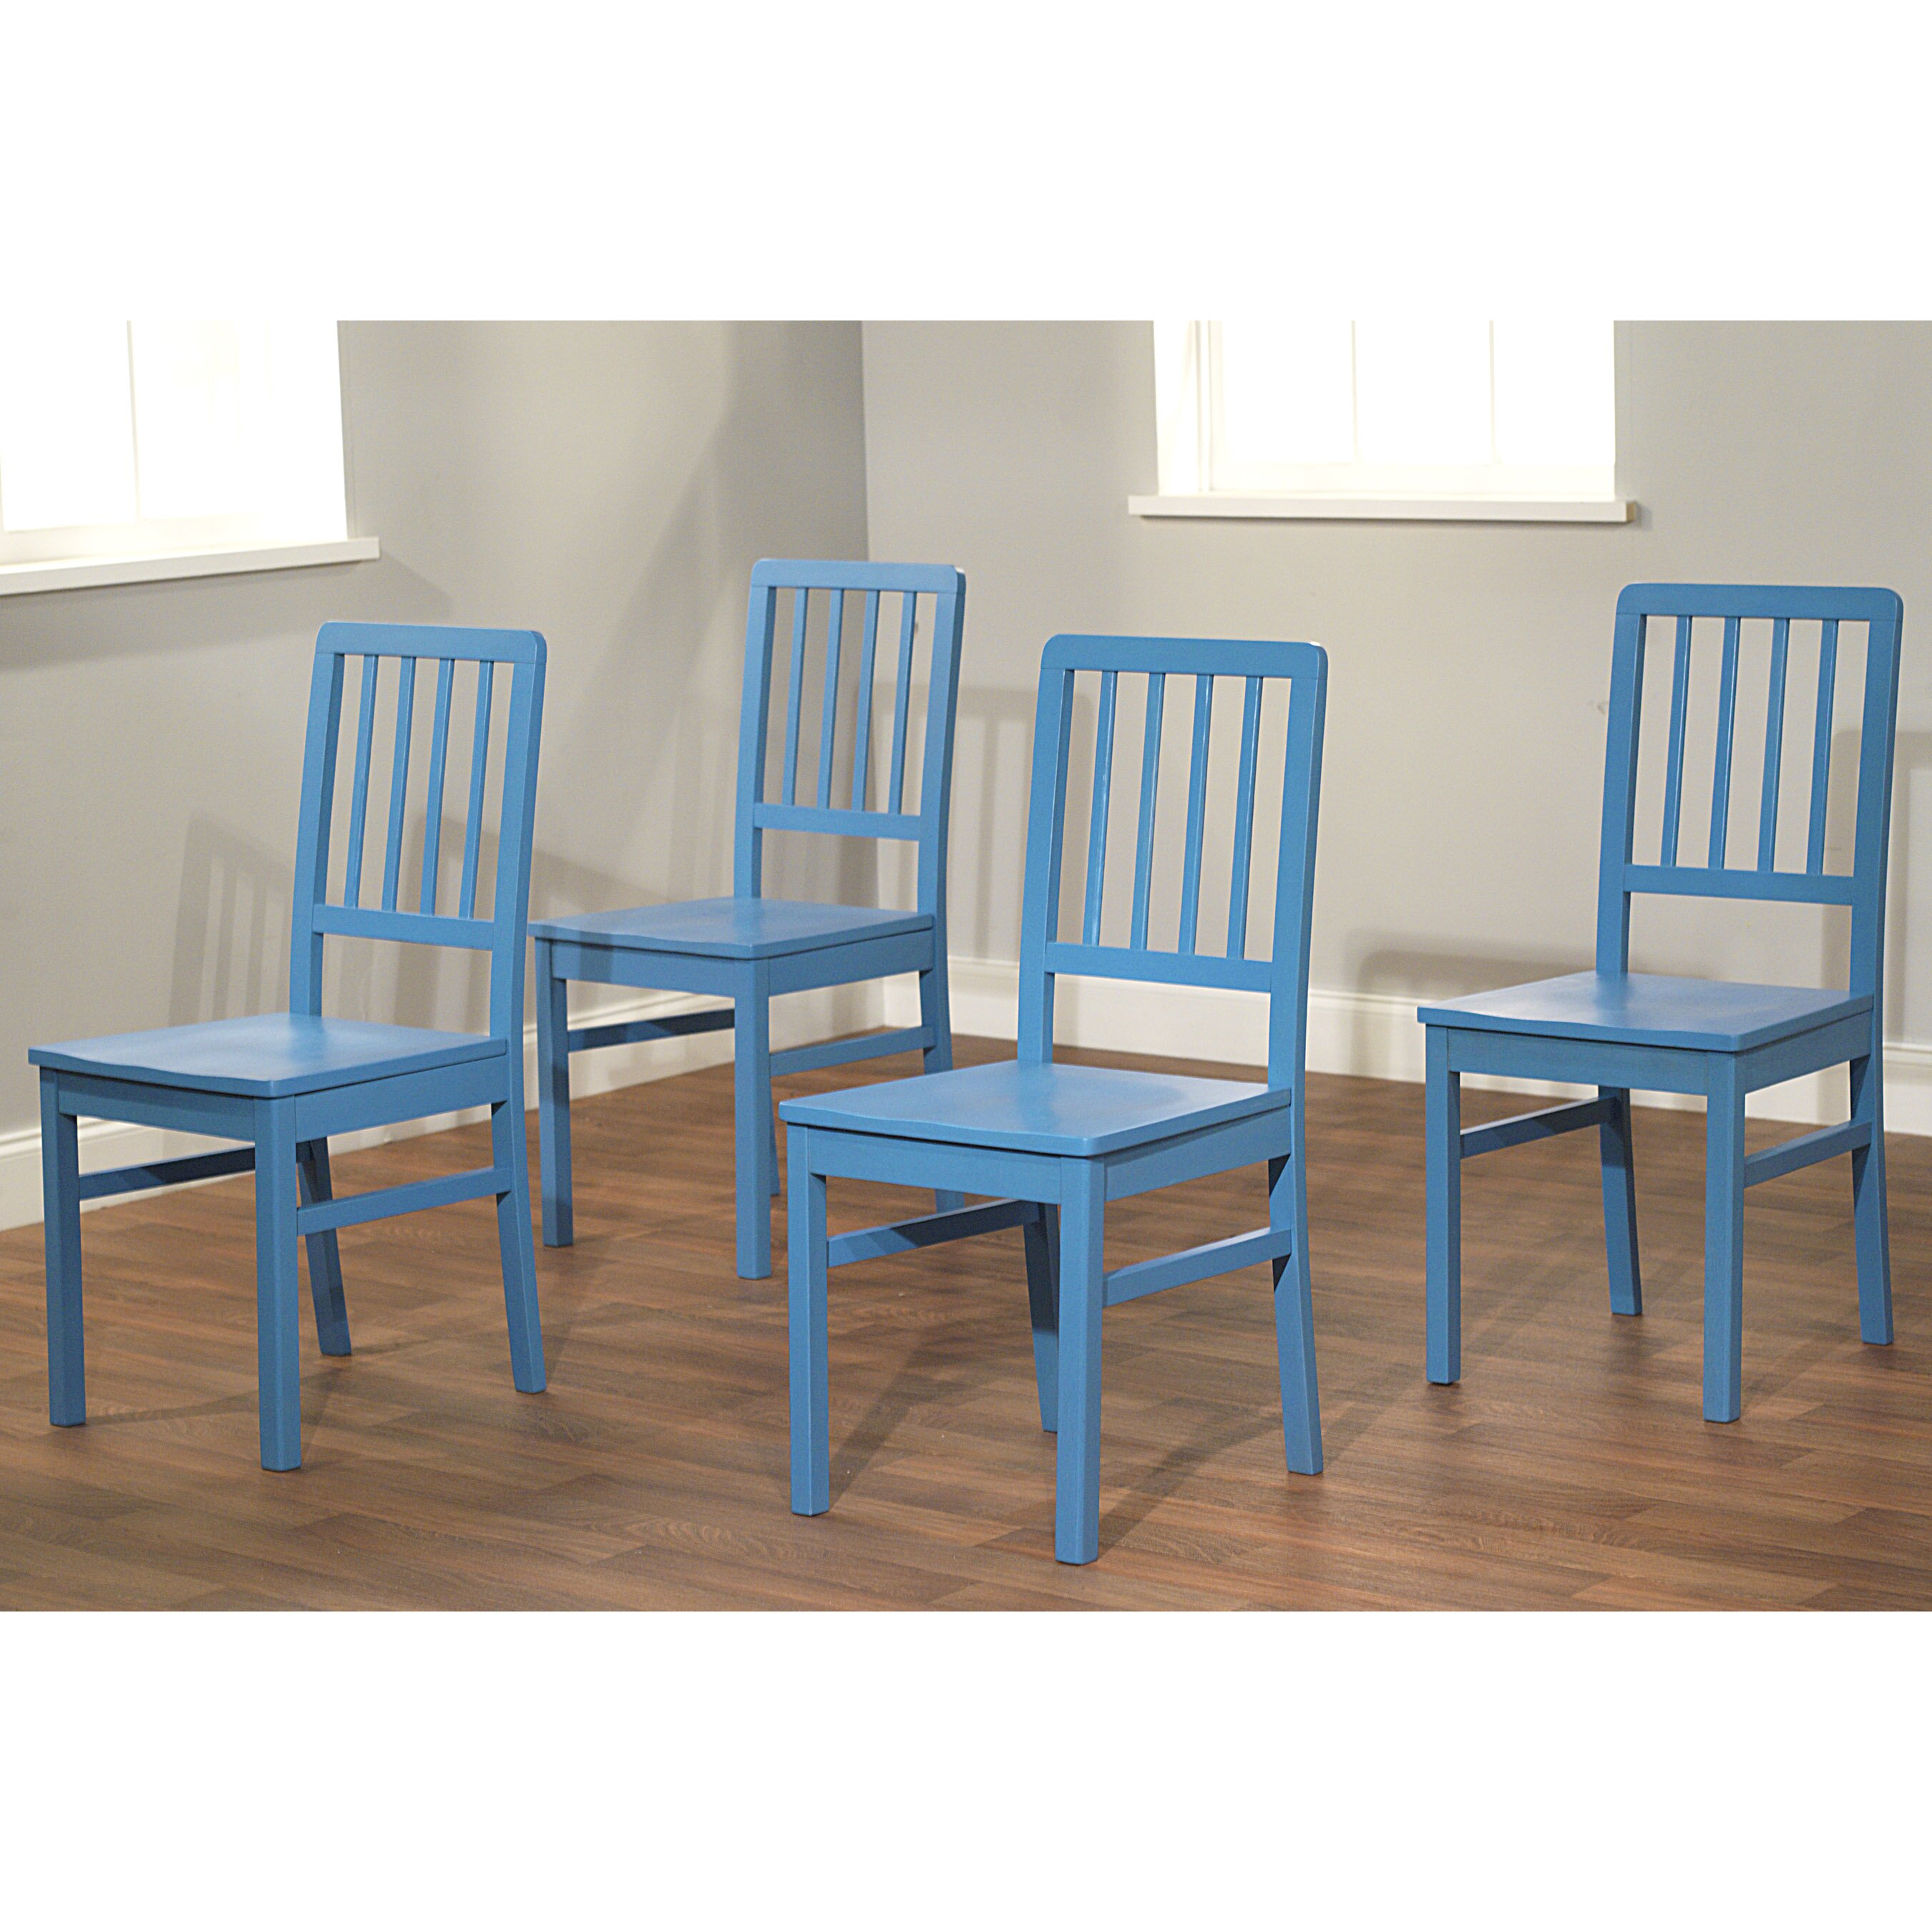 Teal Dining Room Chairs Carolina Side Chair Set Of 4 Seagrass Dining Room Chairs